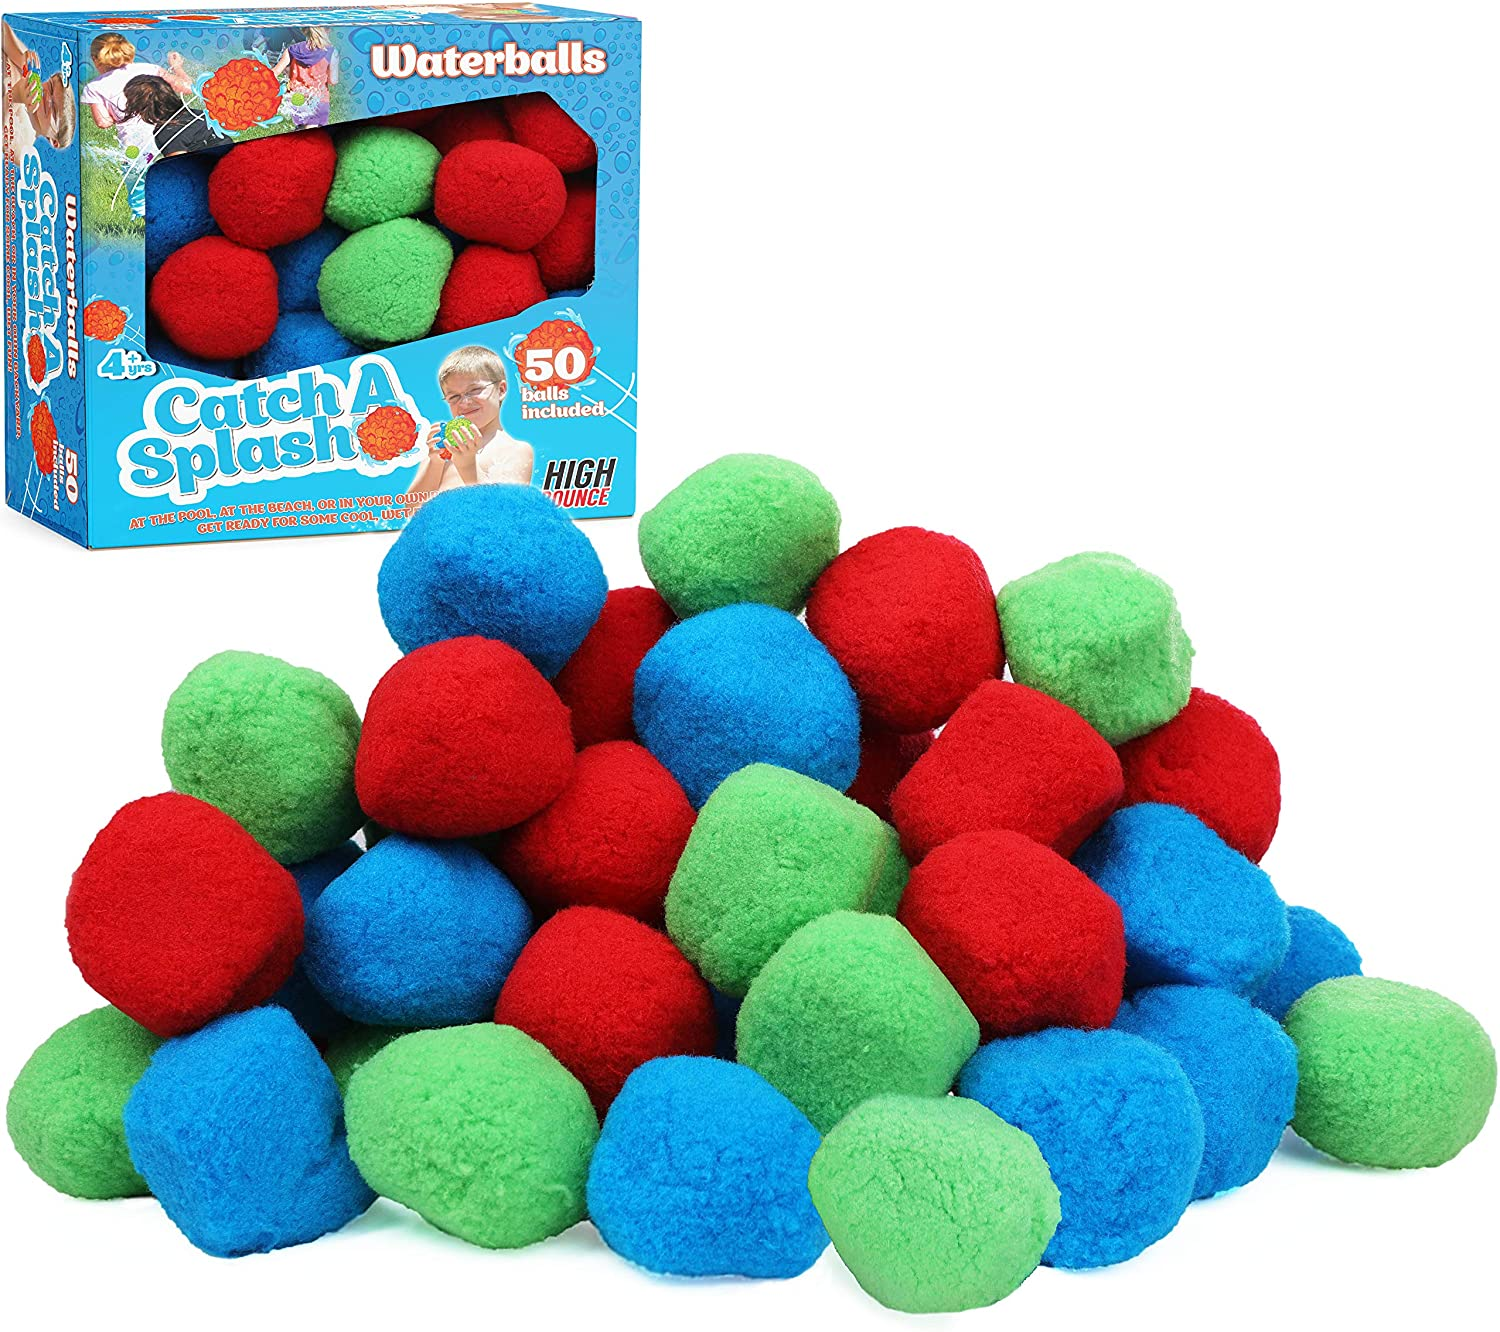 High Bounce Catch-A-Splash Waterballs; 50 Highly Absorbent Cotton Splash Balls- Re-usable Child Friendly Outdoor & Pool Activity